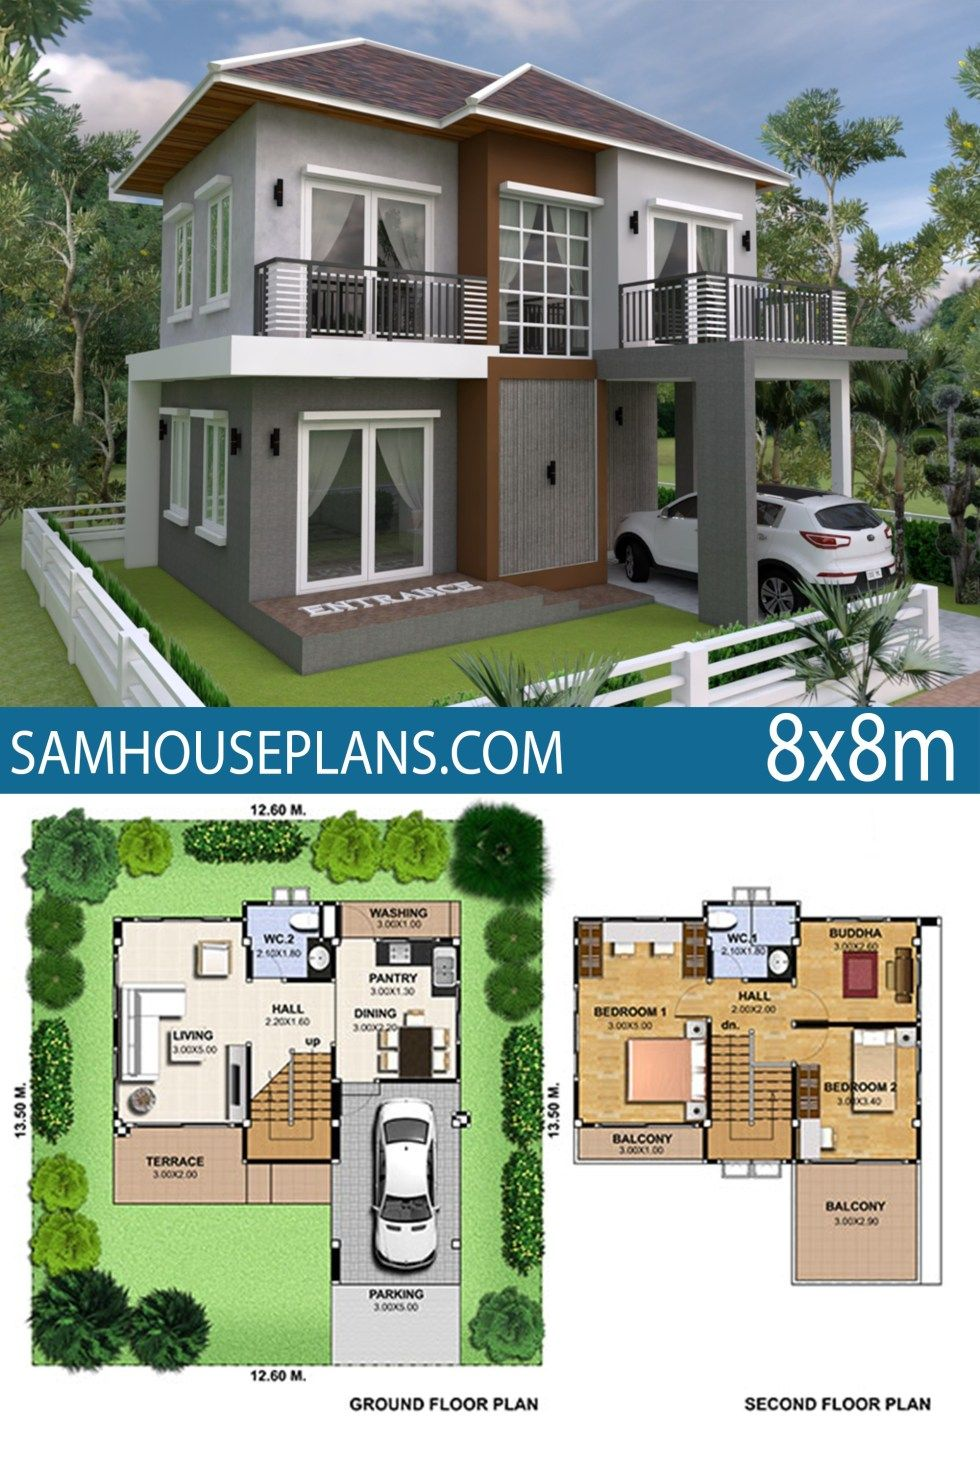 House Design Plans 7x8m With 3 Bedrooms Home Ideassearch Smallhouseexteriorflorida Verysmallhouseexter In 2020 Small House Exteriors Home Design Plans House Design